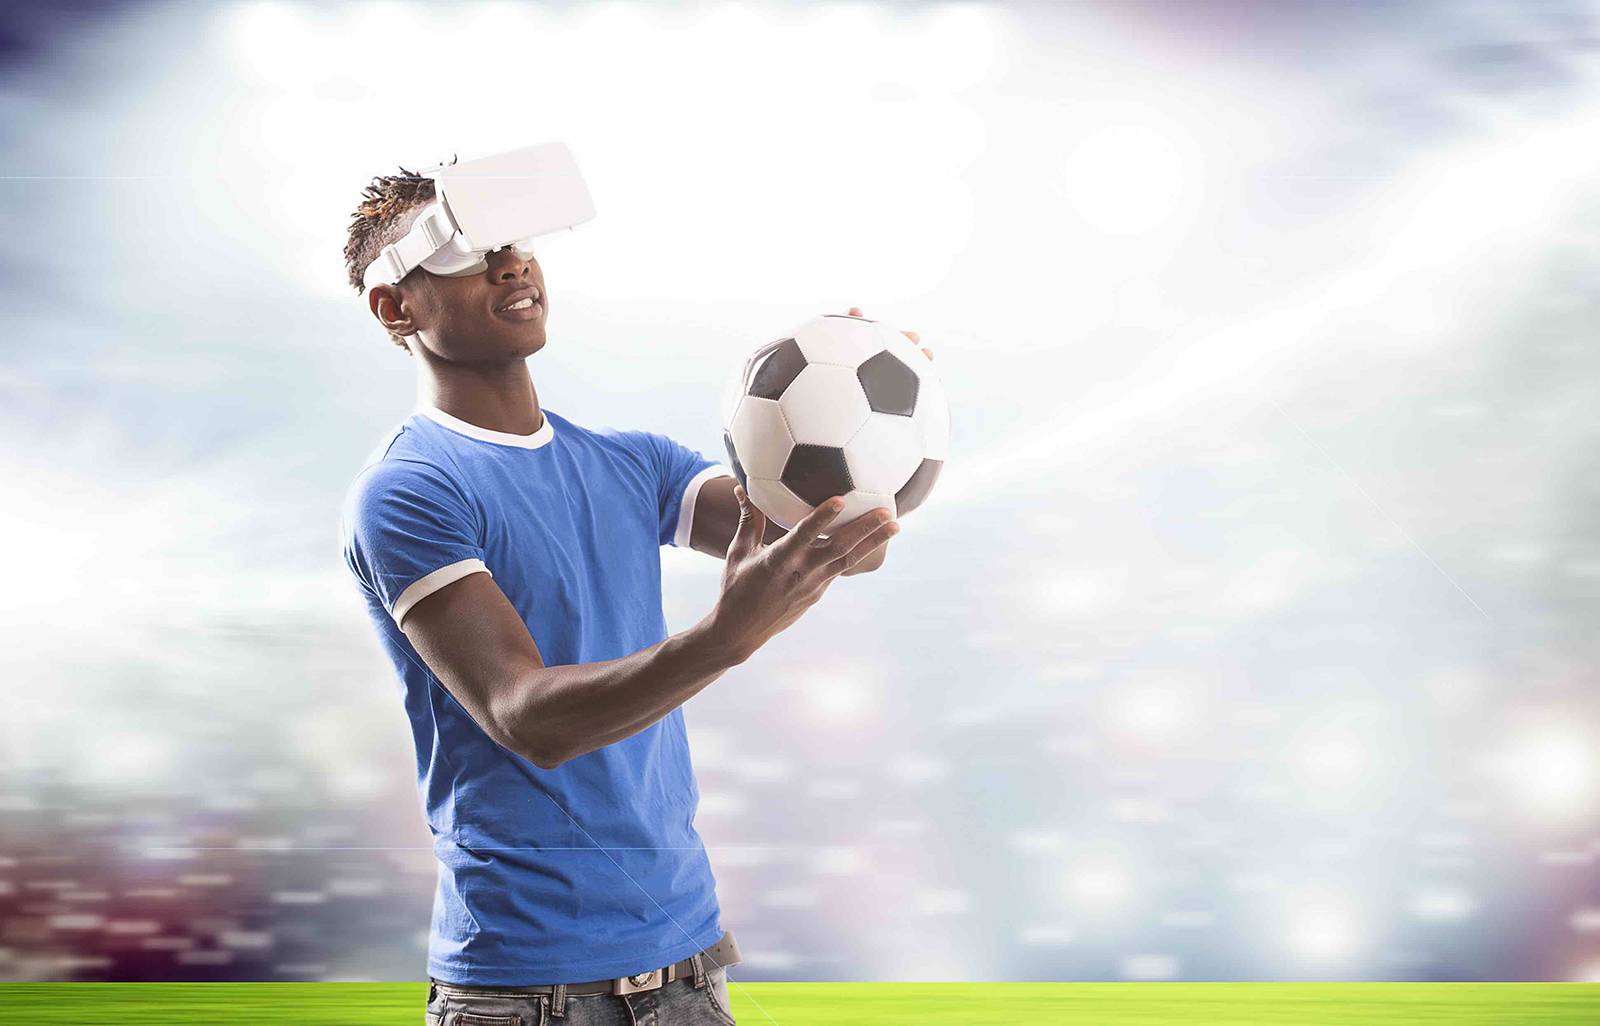 Will Olympic Agenda 2020+5 Pave The Way For Inclusion Of Virtual Sports?